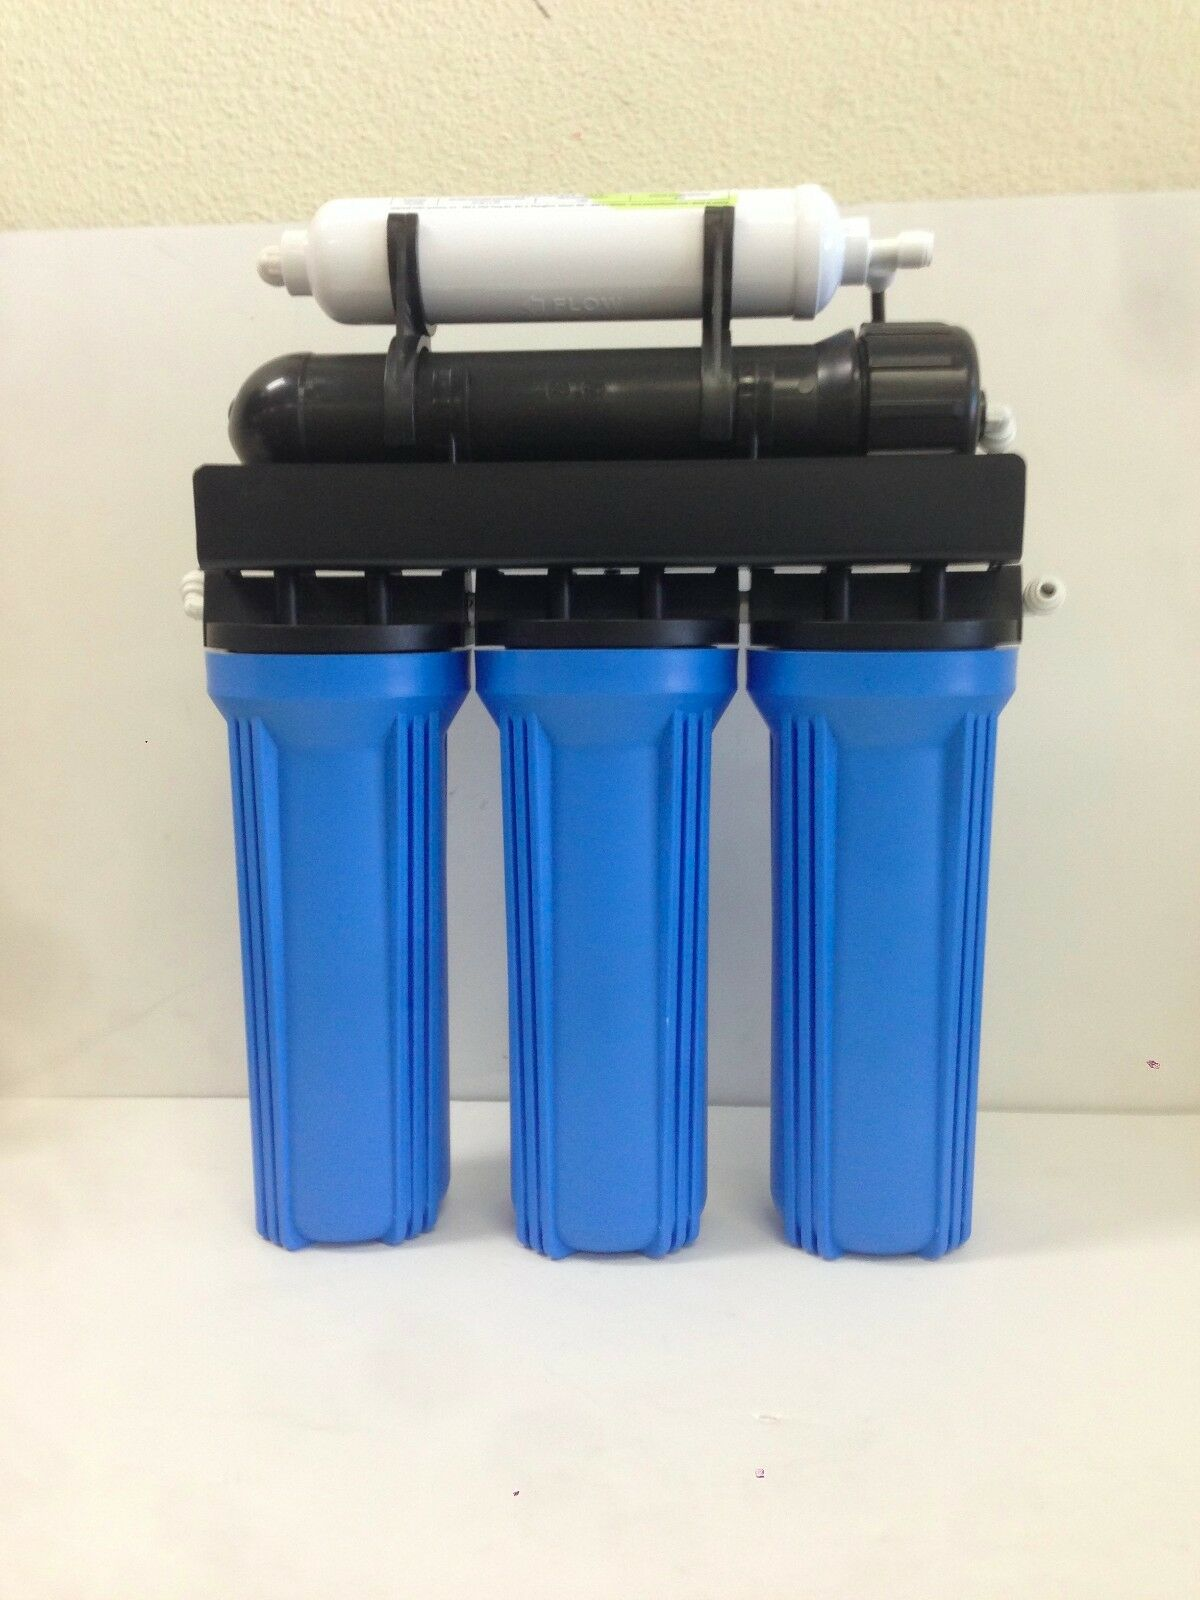 Premier Reverse Osmosis water filter 5 stage Core System Low Pressure USA